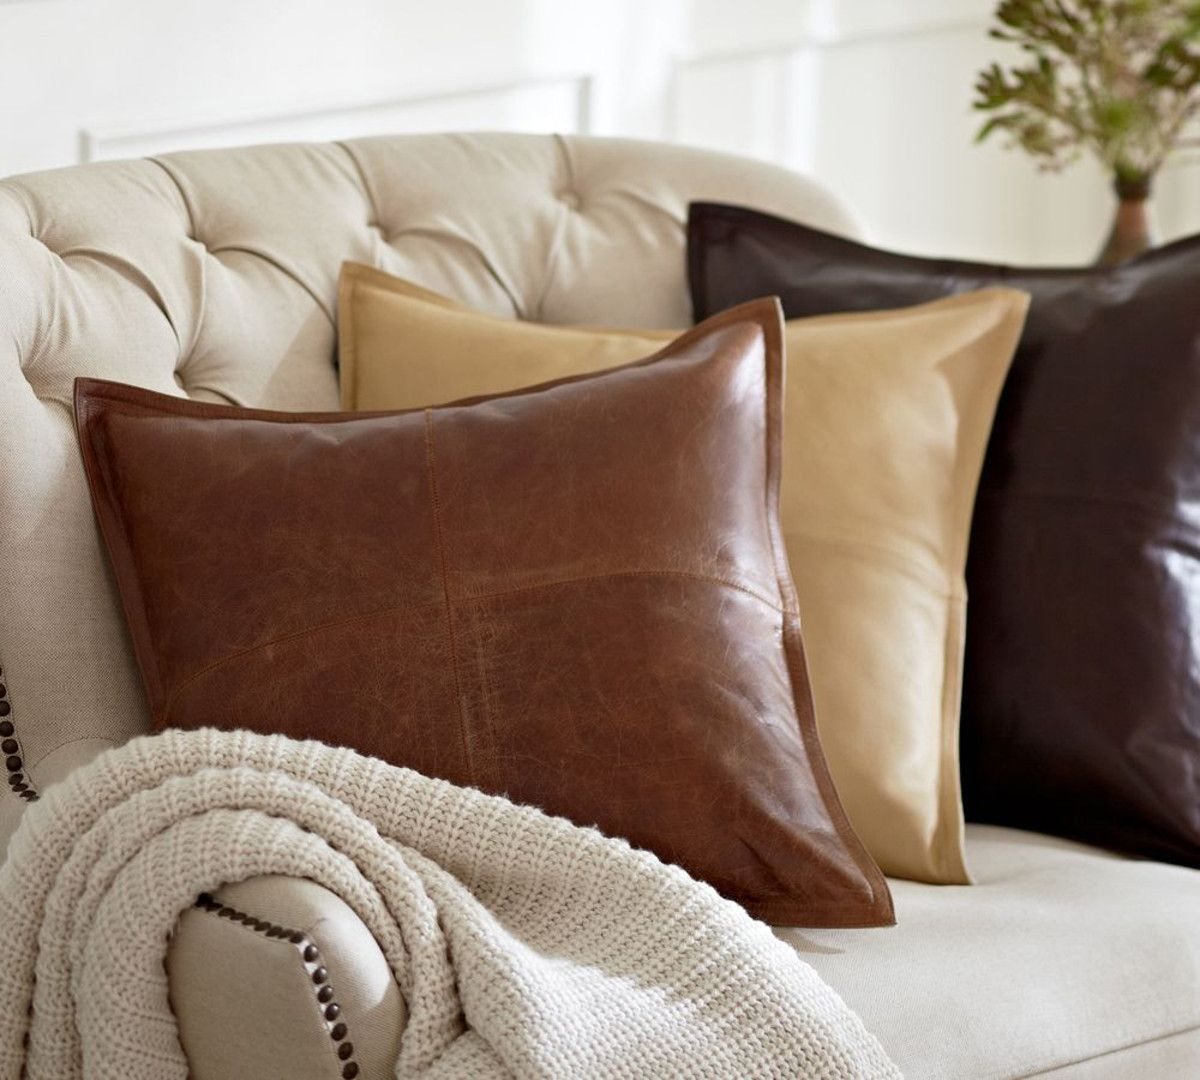 Couch Pillows: A Perfect Touch To Interior Design